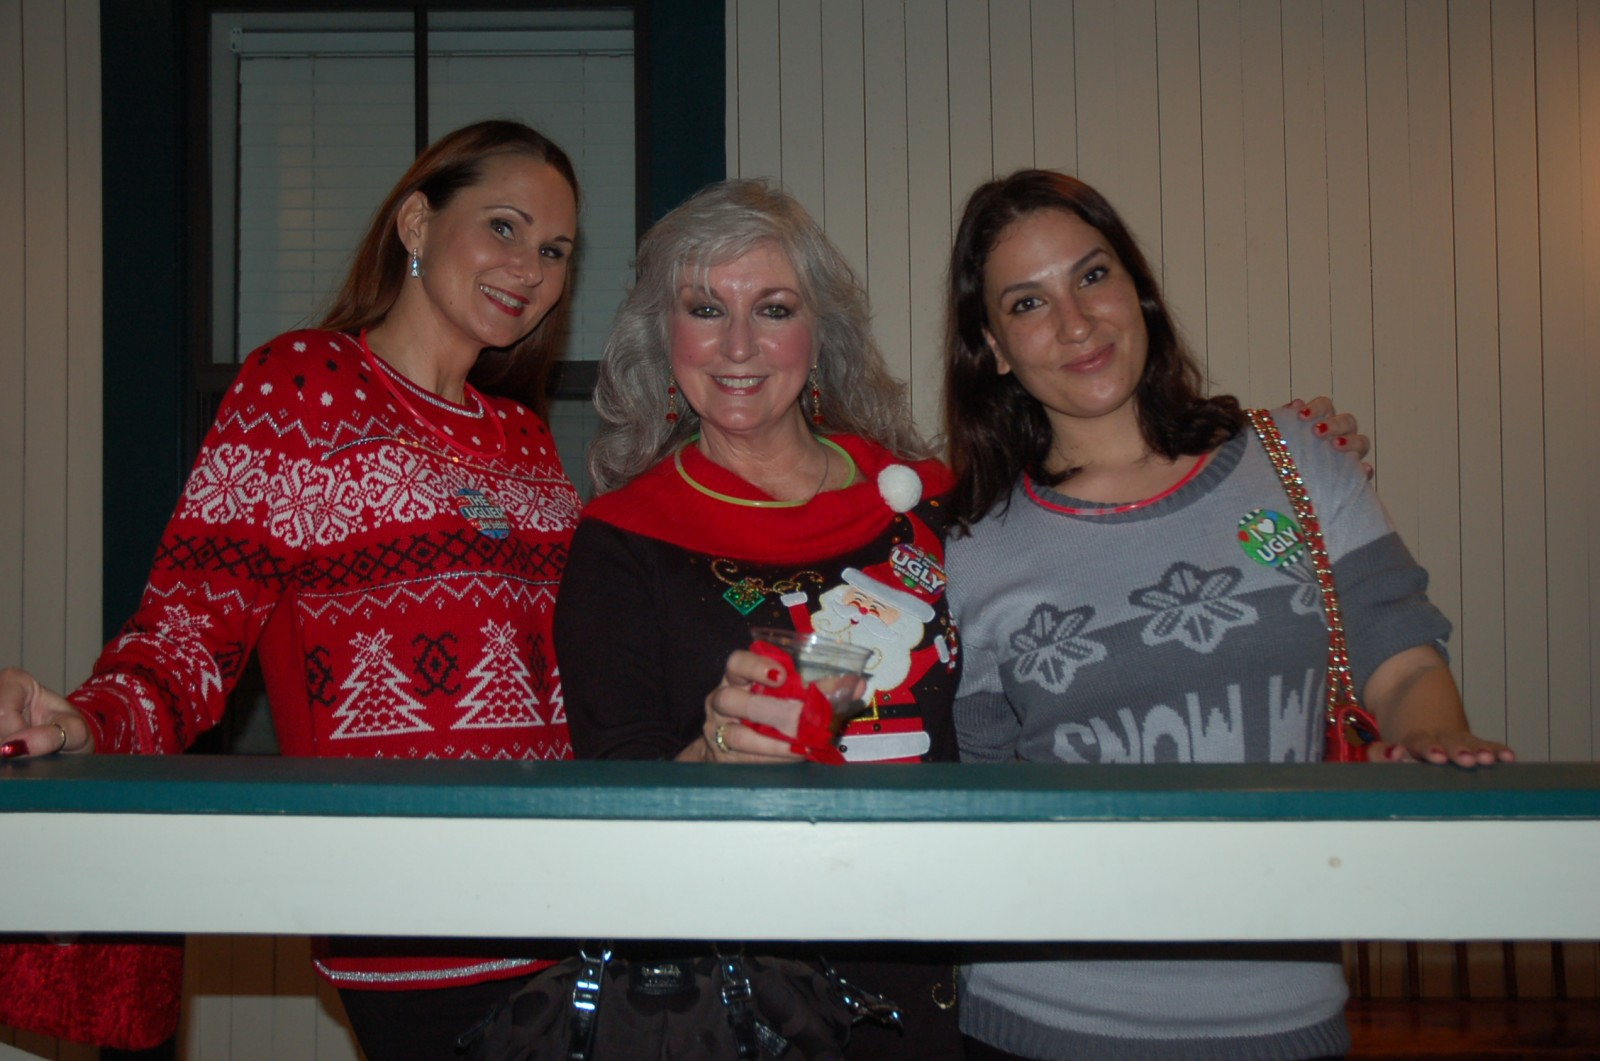 HOLIDAY industry party lcr (4)